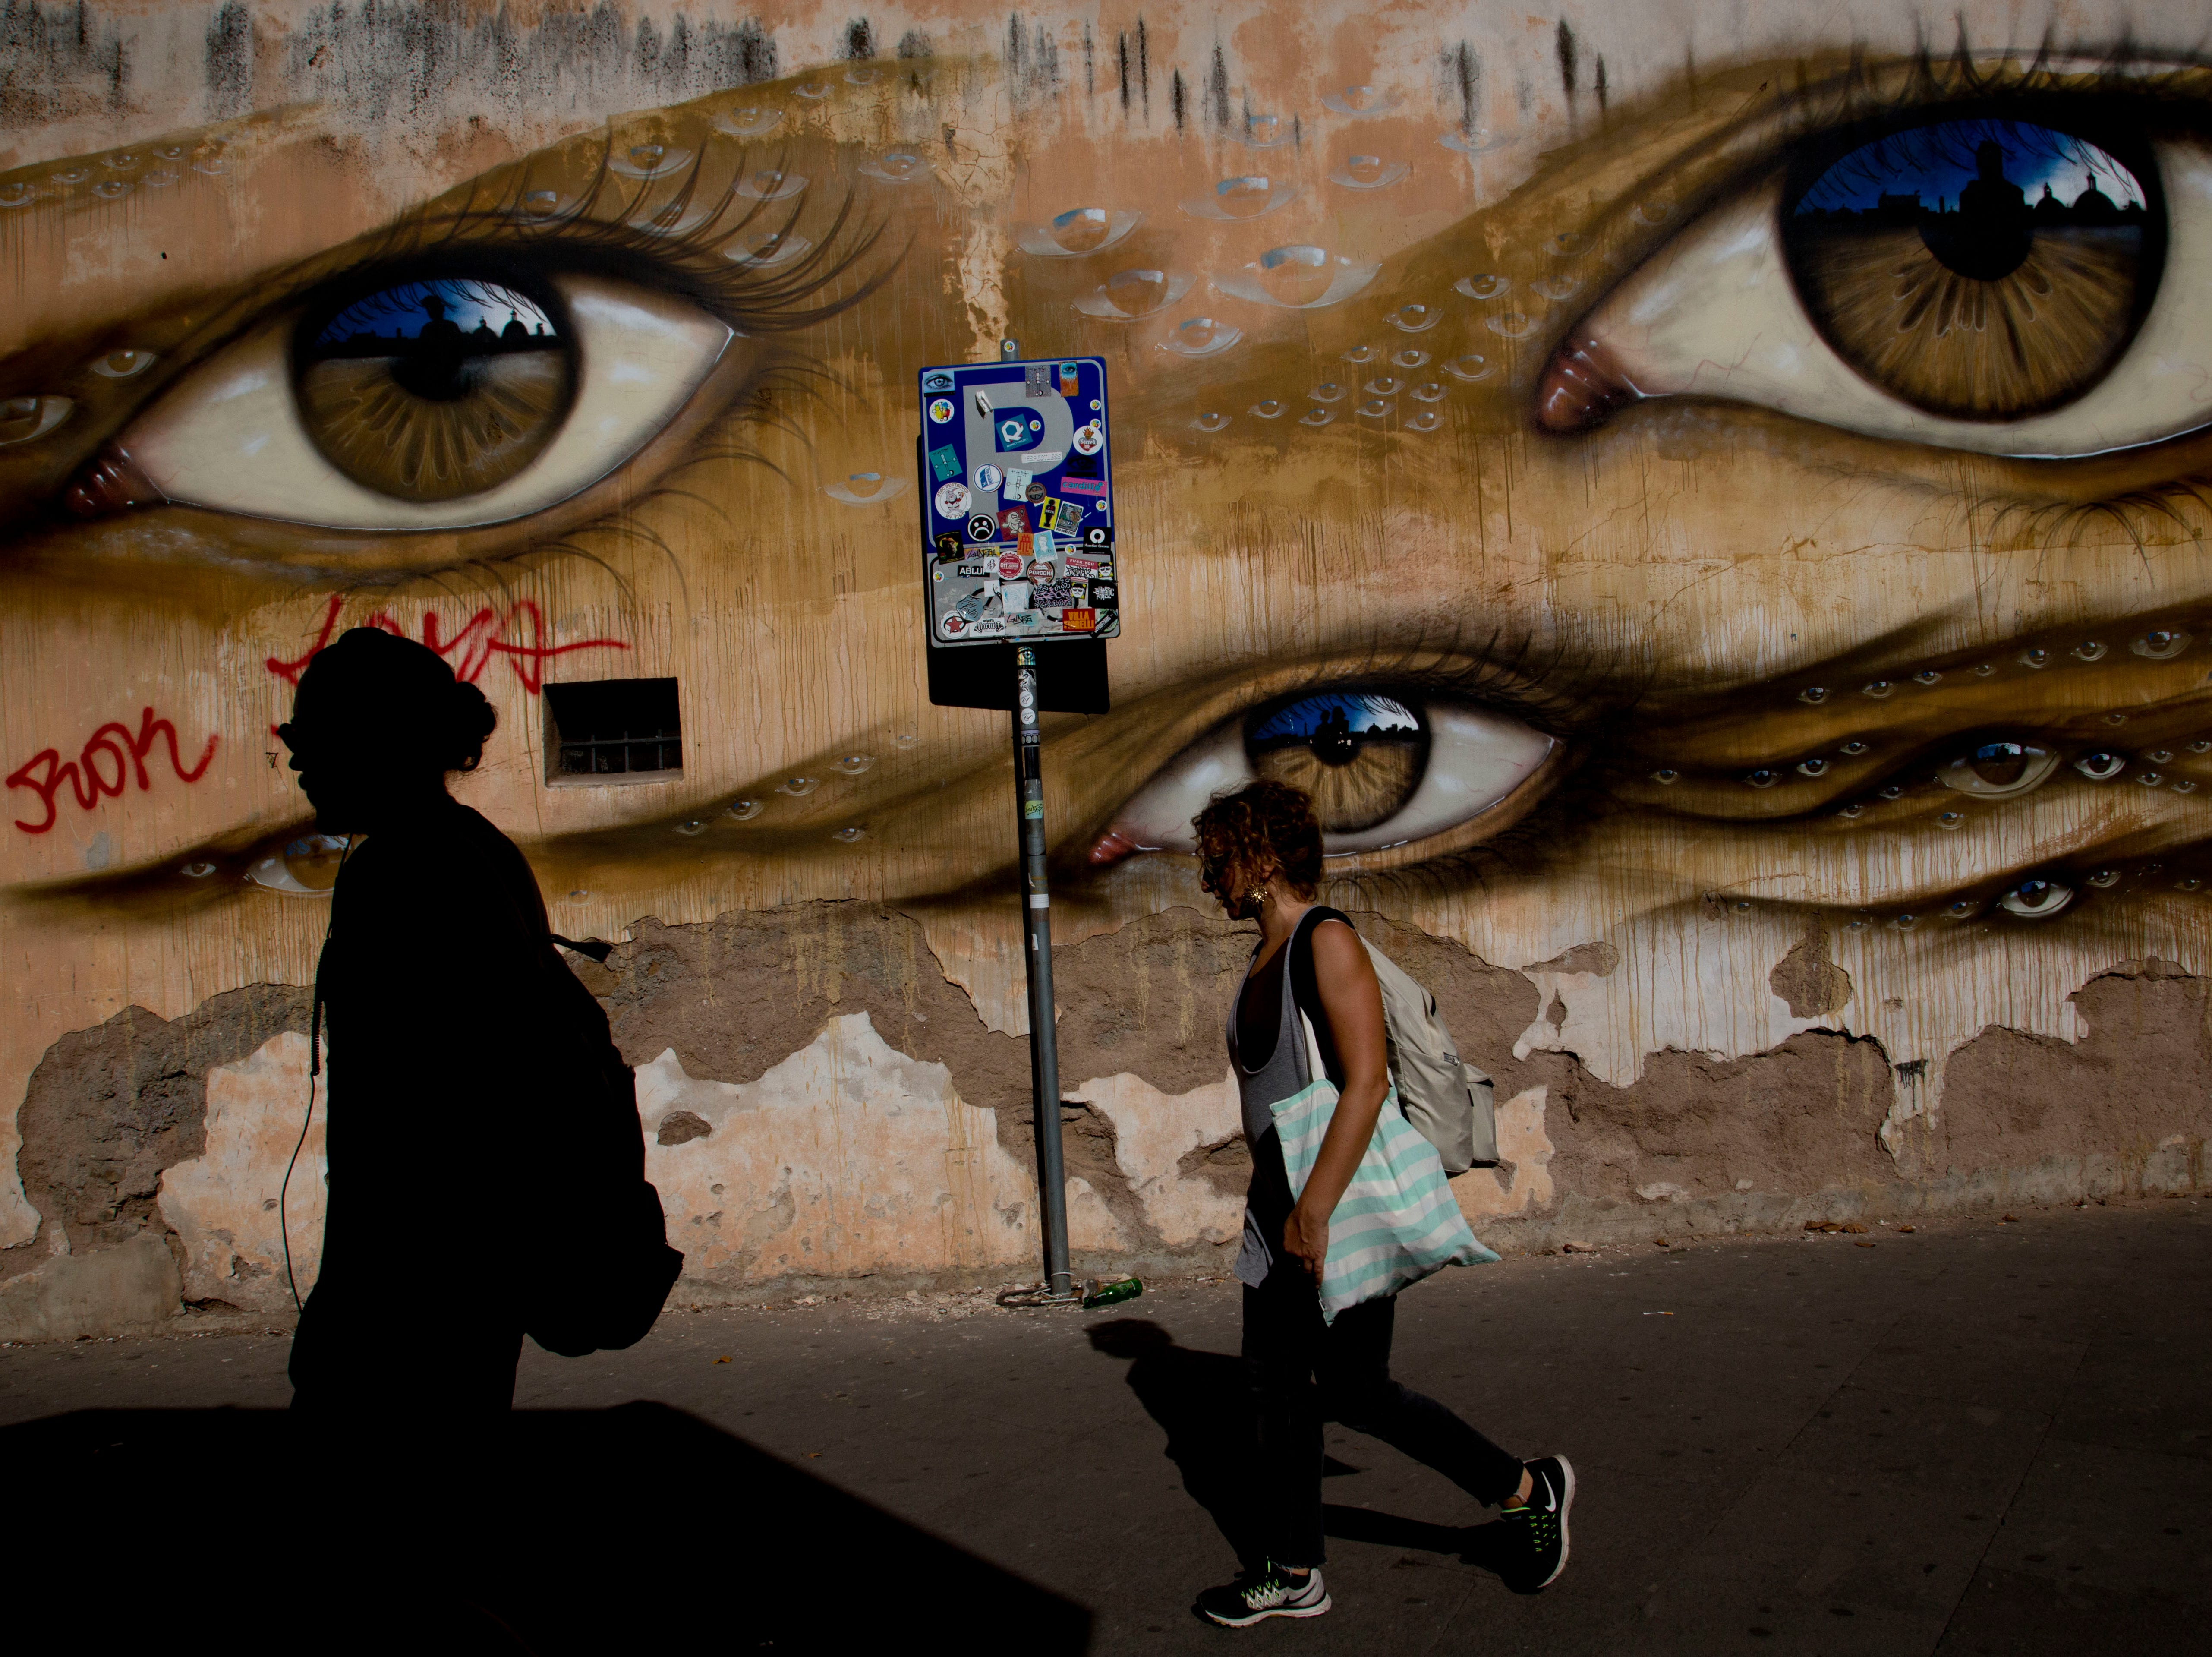 People walk past the mural by British street artist My Dog Sighs, in Rome's Trastevere neighborhood, Monday, Sept. 24, 2018.